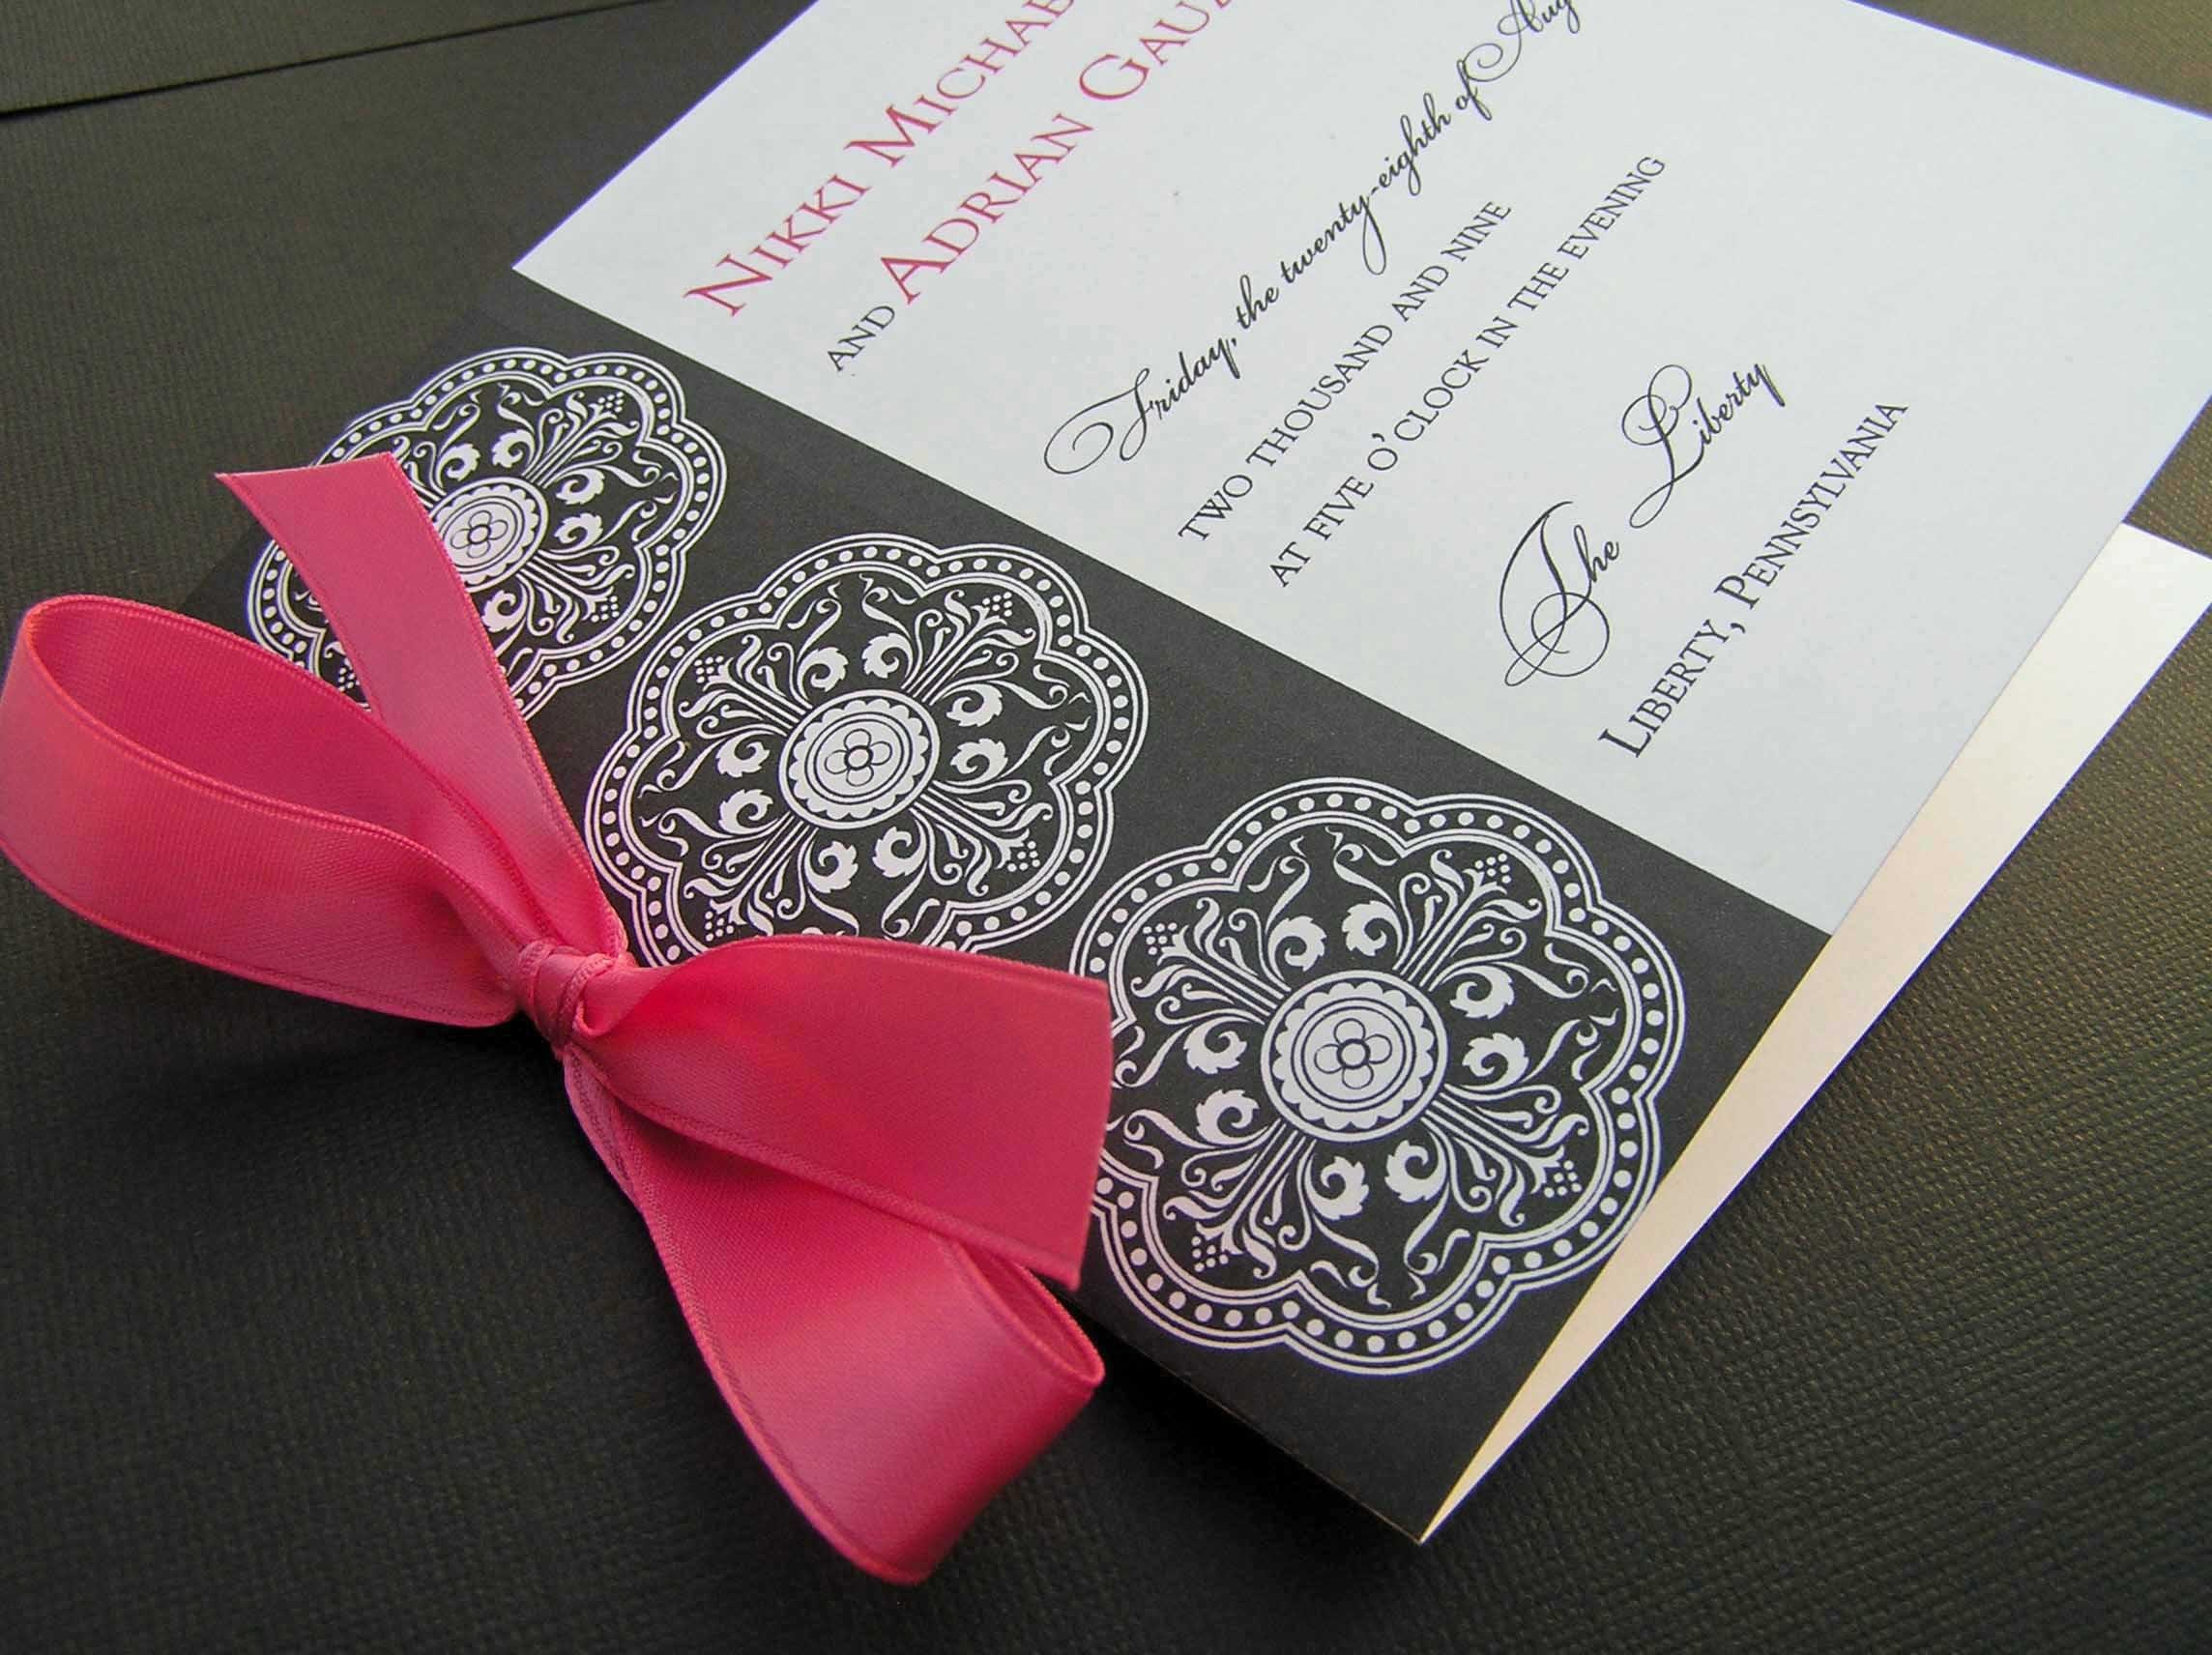 Ceremony, Inspiration, Flowers & Decor, Stationery, white, black, Invitations, Wedding, Program, Board, Damask, The write touch